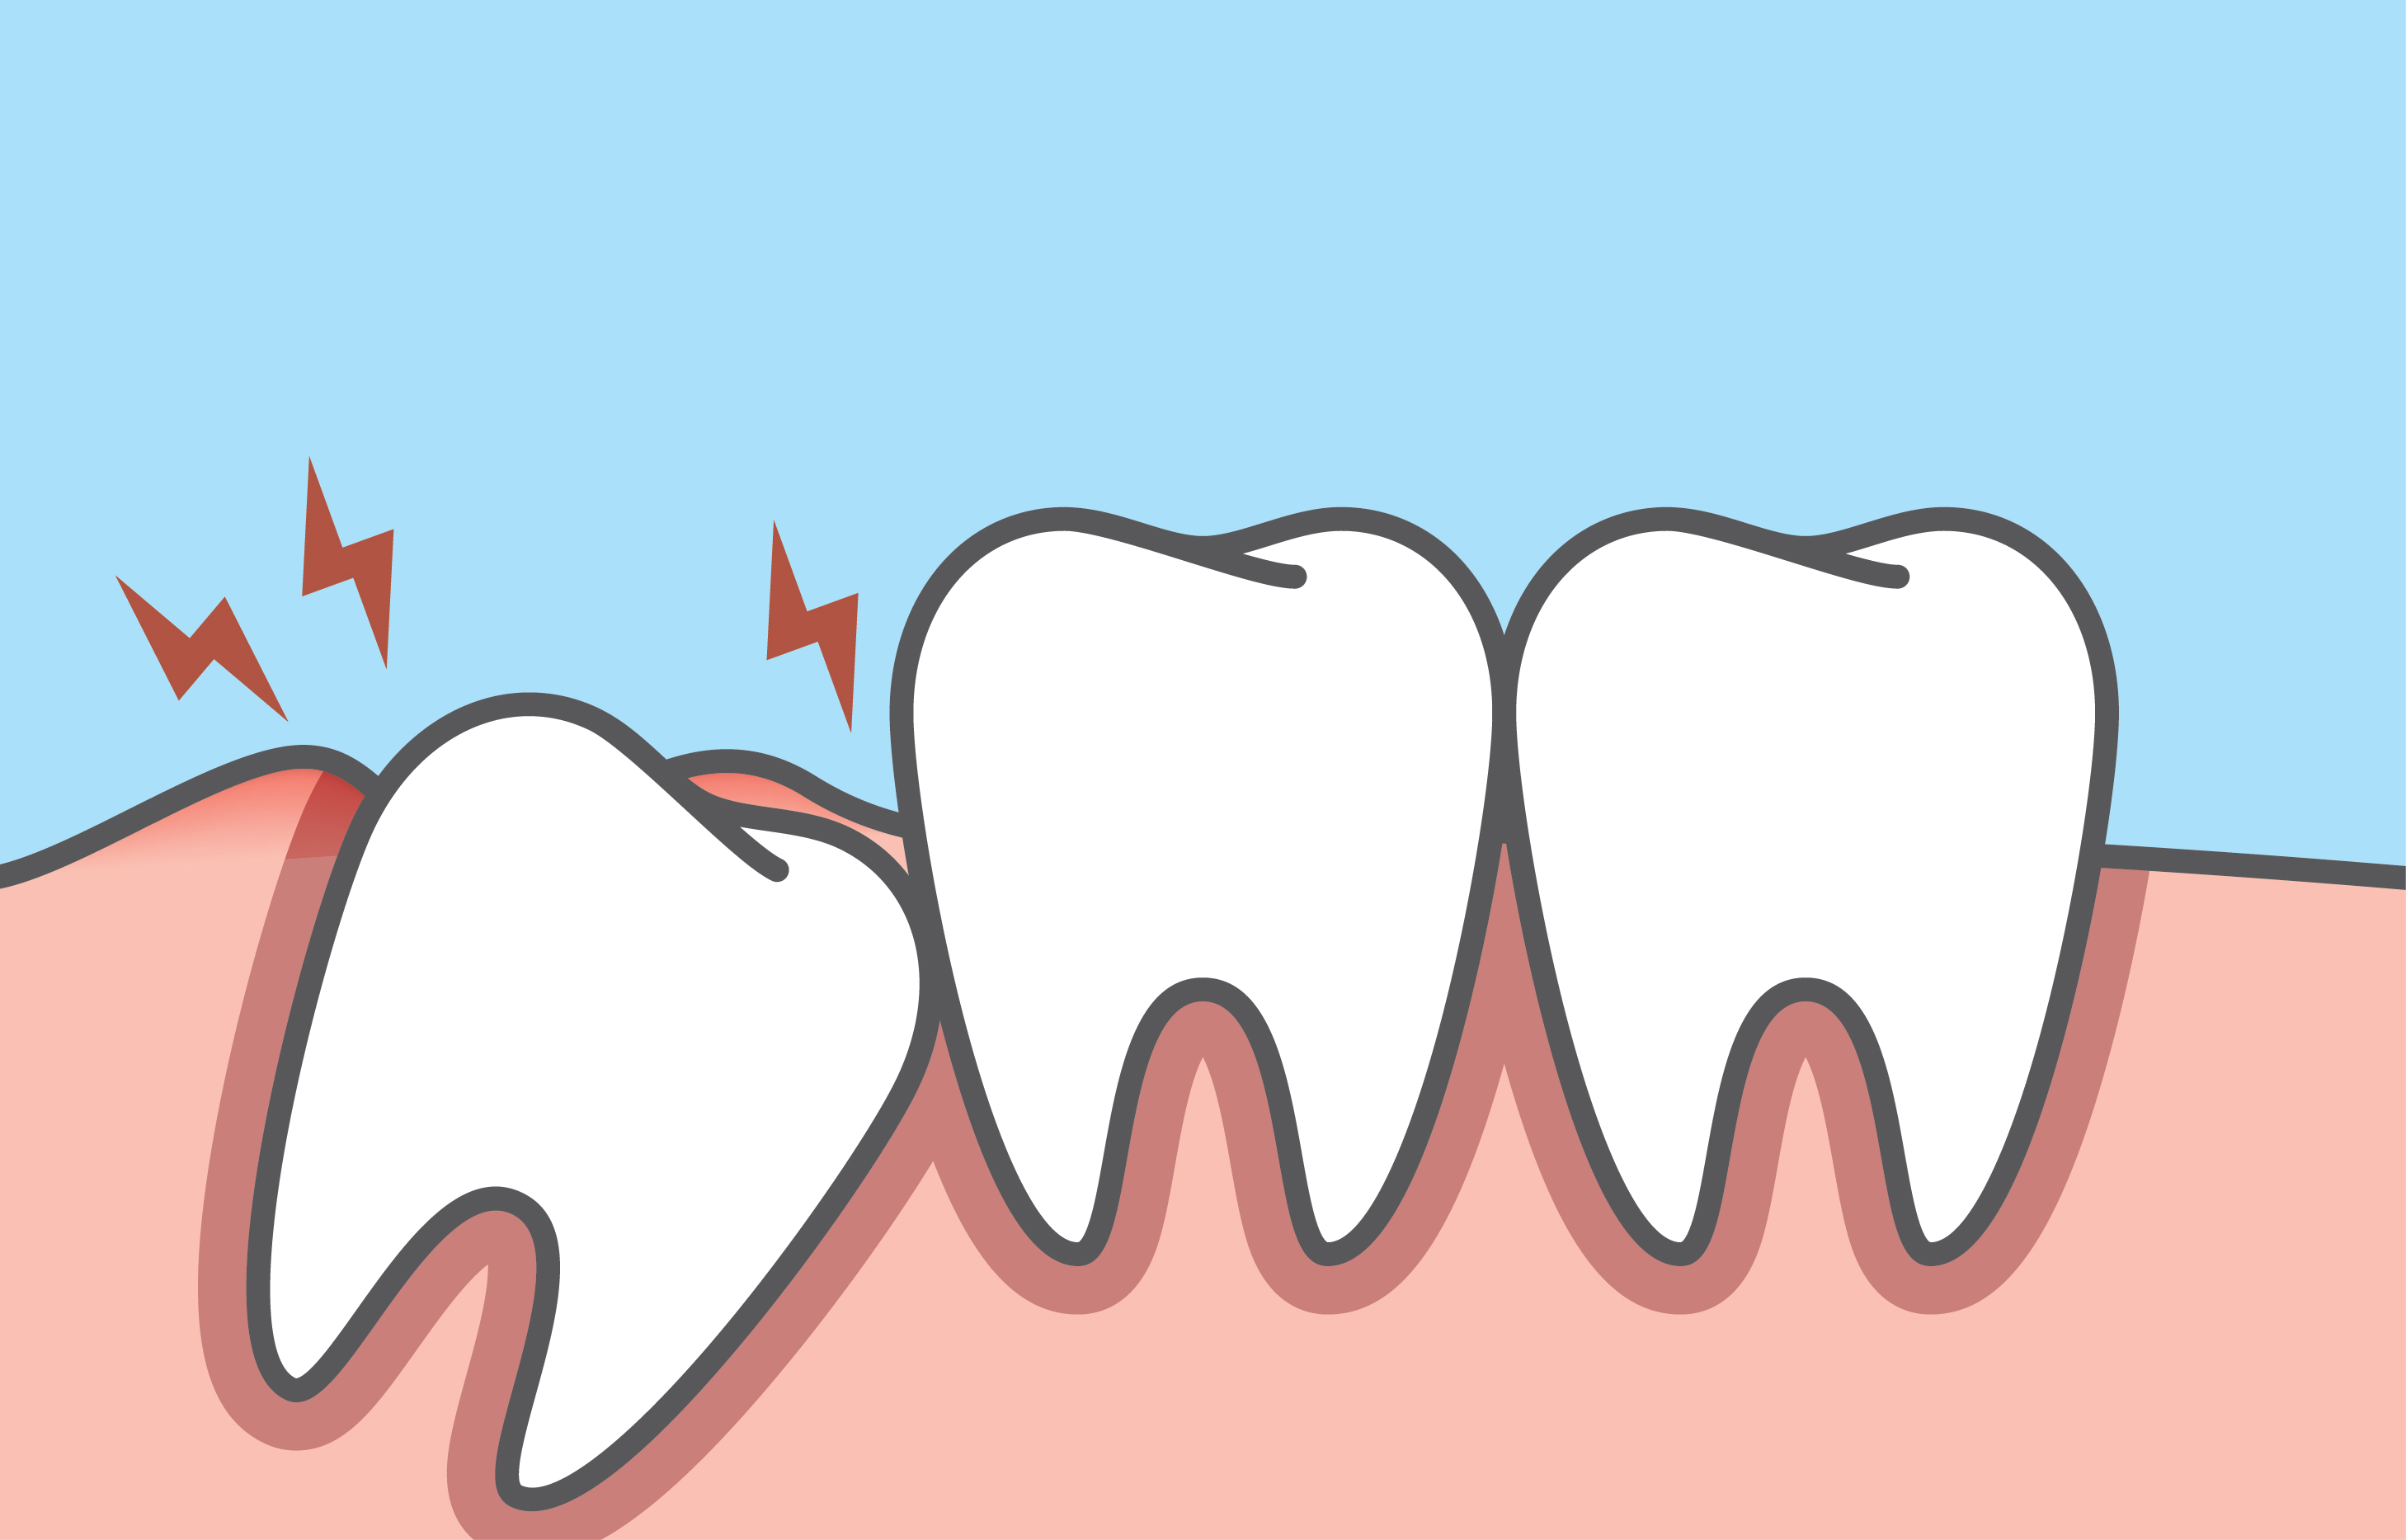 Wisdom tooth clipart banner free Wisdom Teeth: What You Need To Know - Singapore Dental Clinics banner free